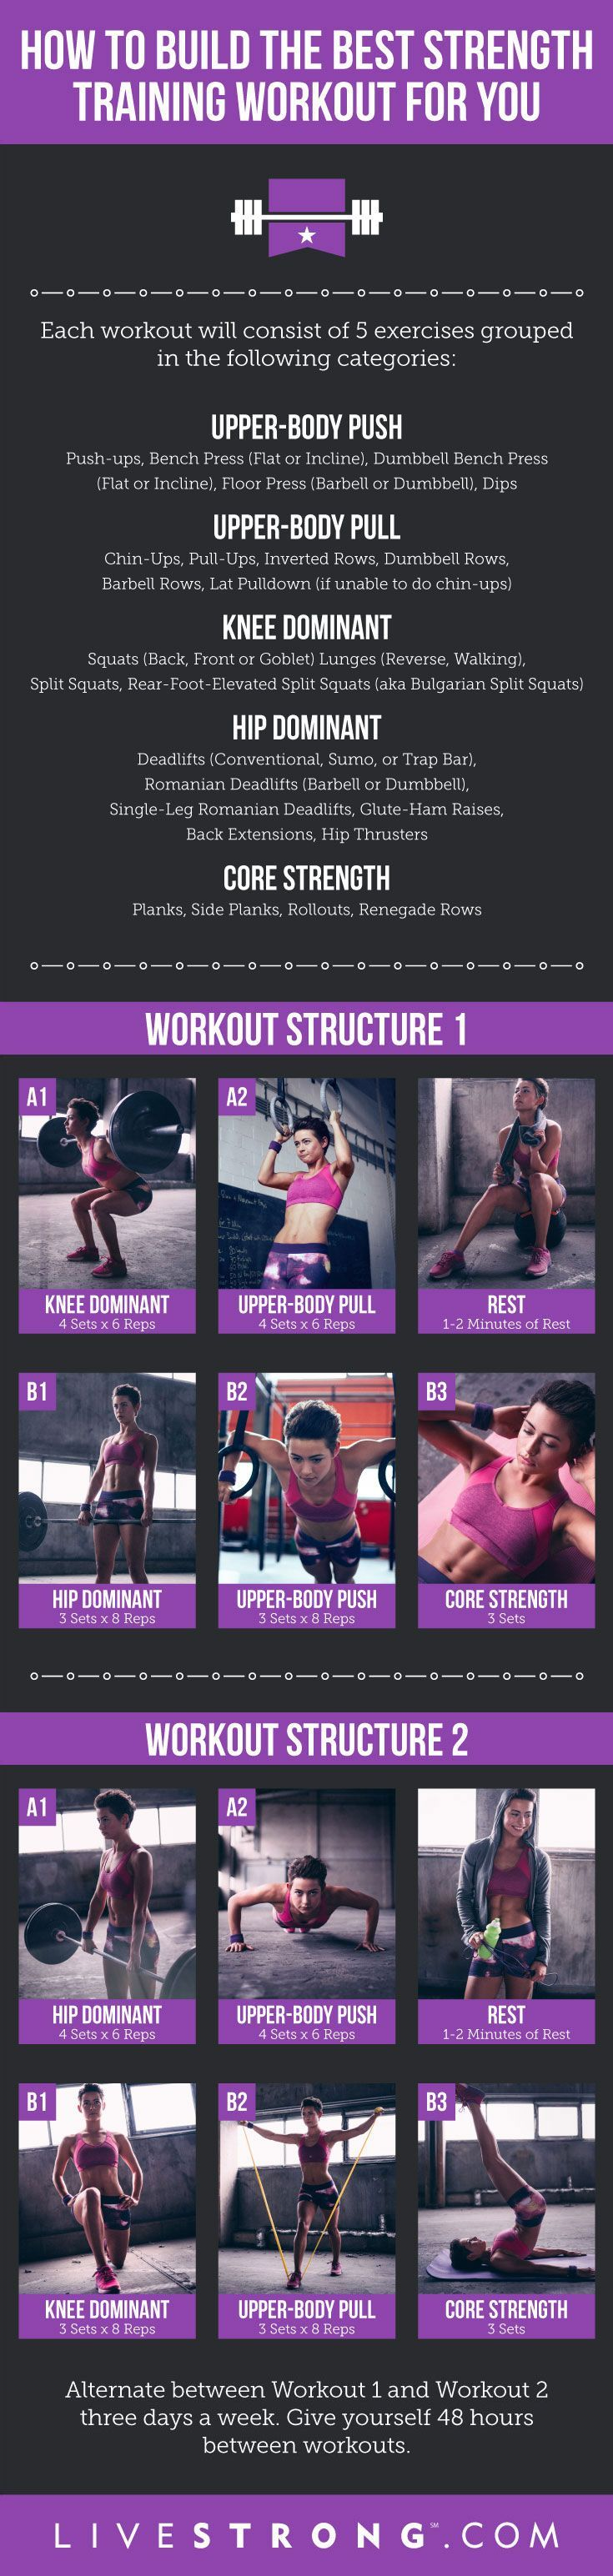 A simple plan to develop functional, full-body strength